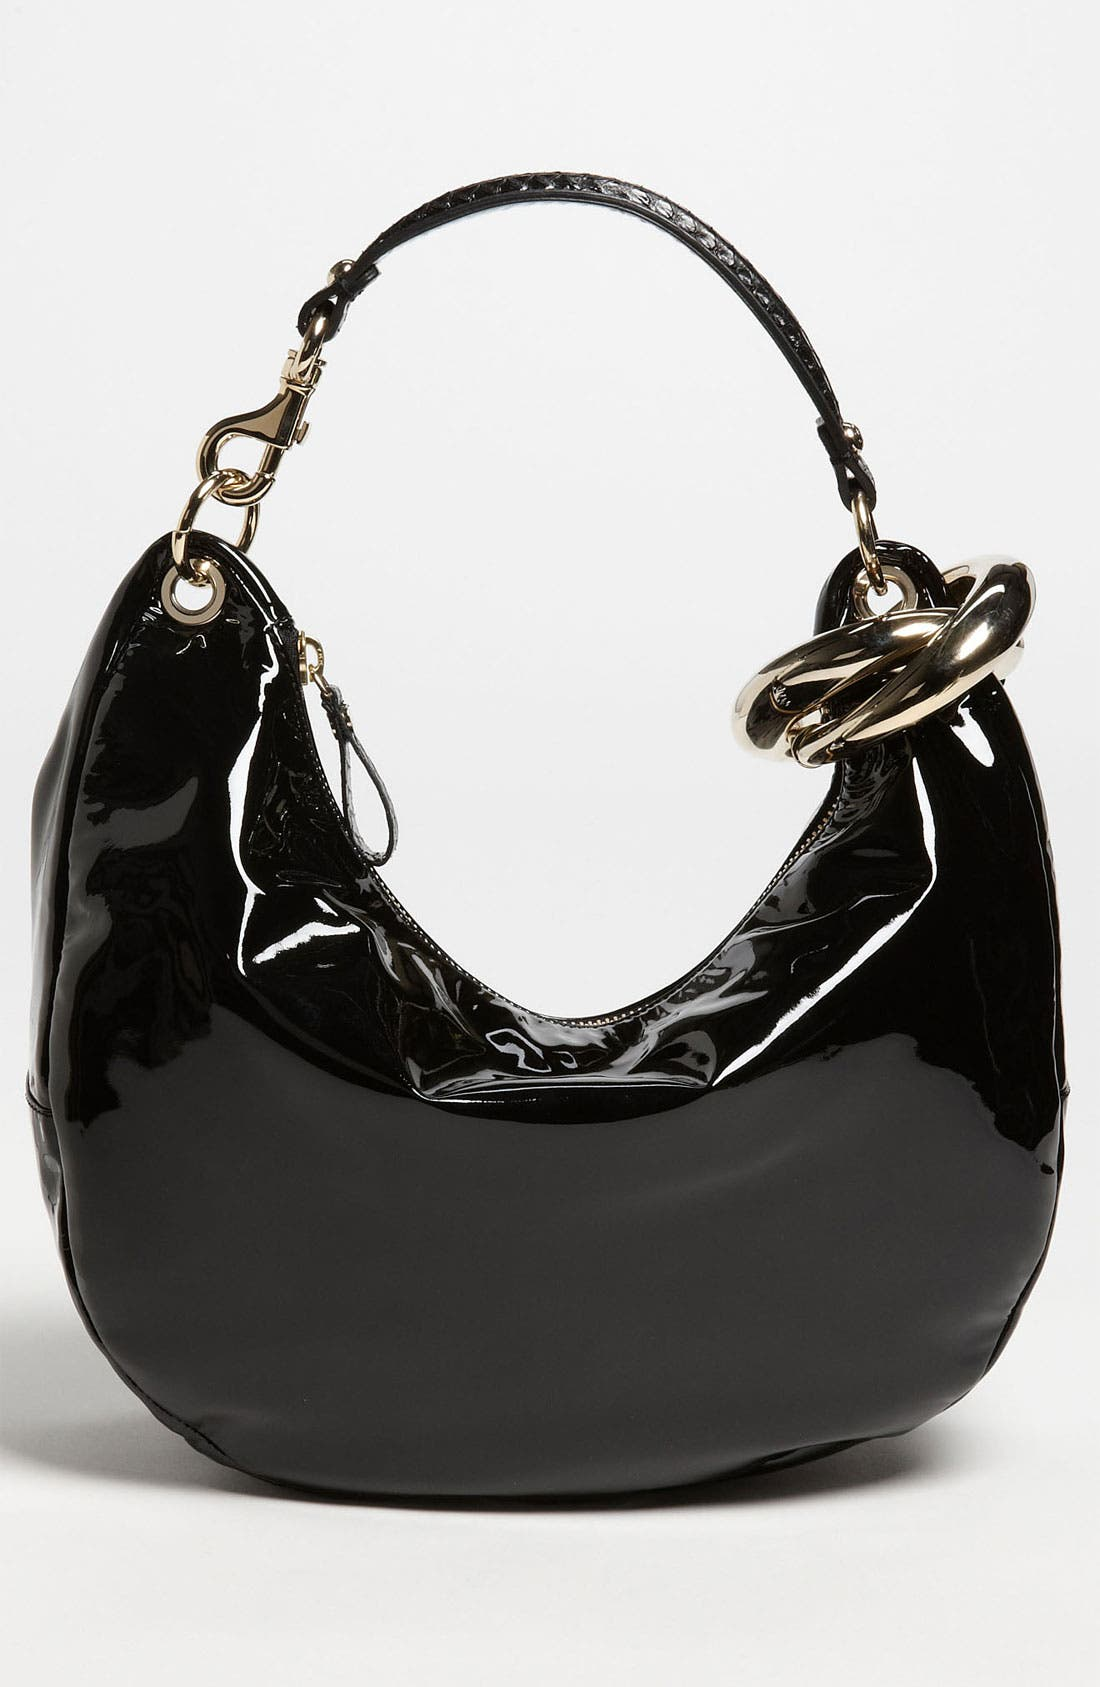 Main Image - Jimmy Choo 'Solar - Small' Patent Leather Hobo